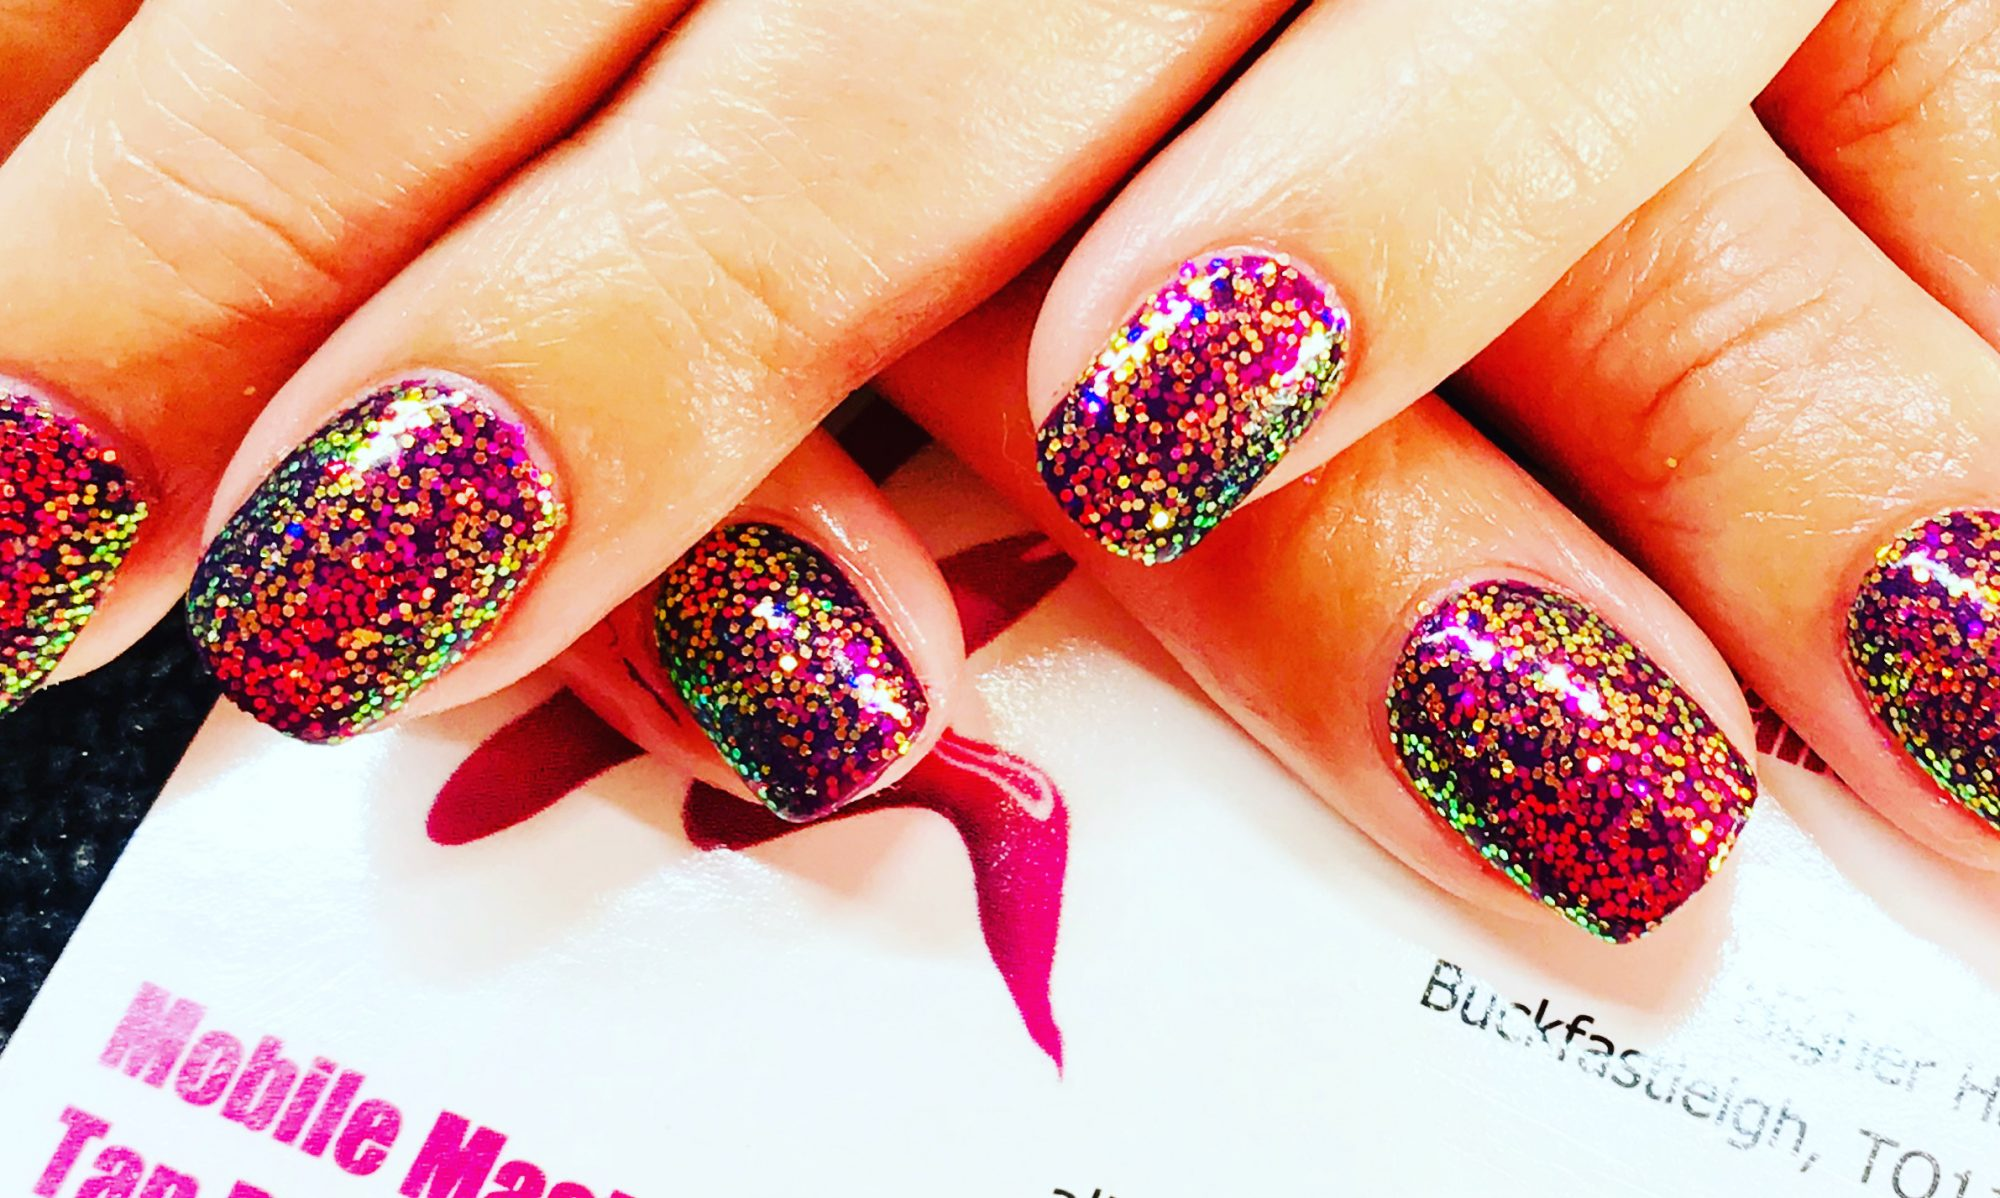 Alis Nails and Beauty Co